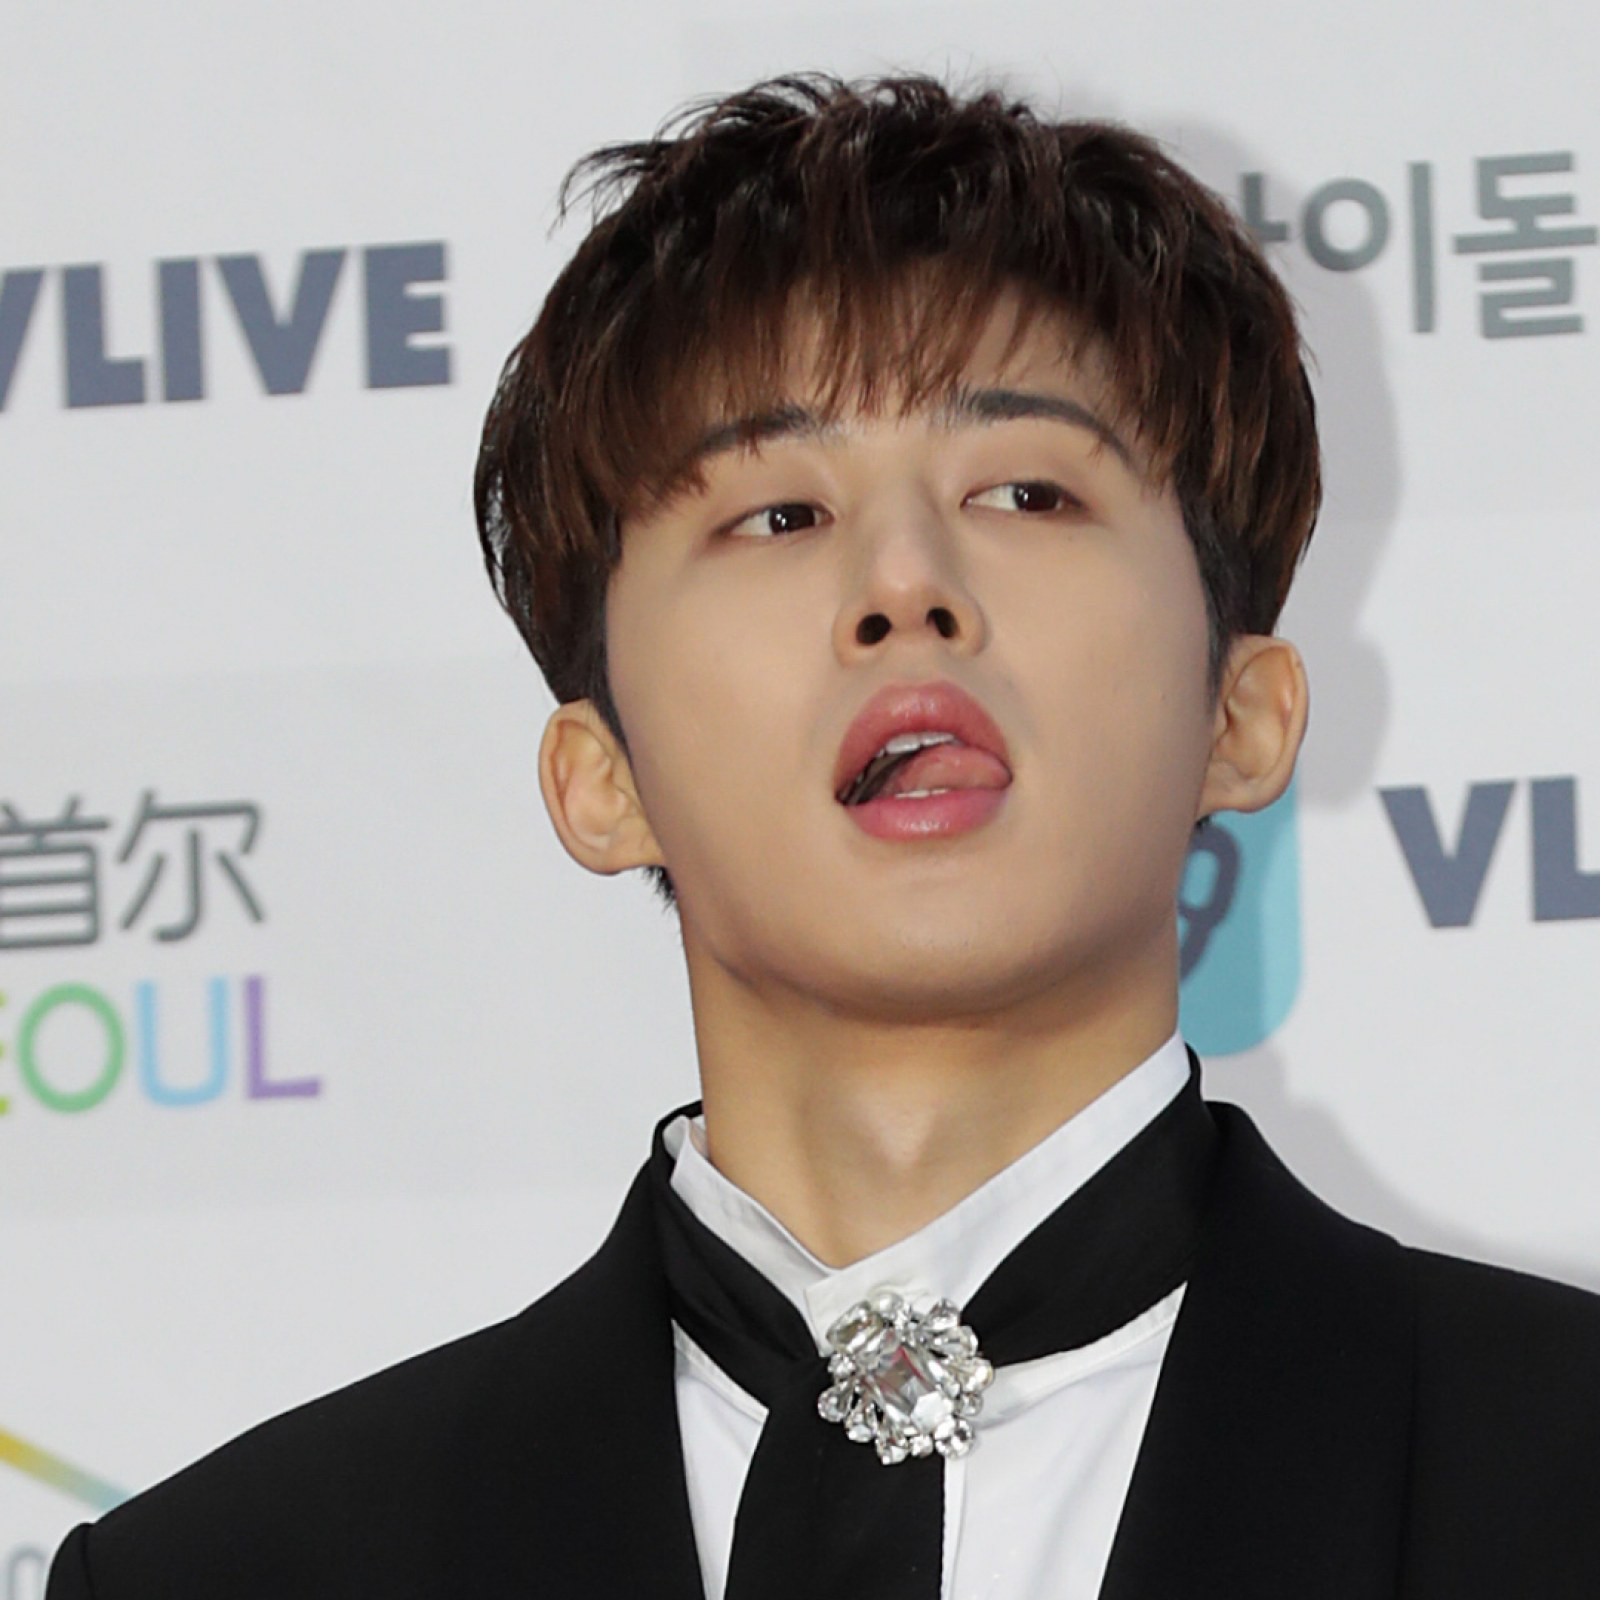 Acceptance Speech and B.I.'s return to music